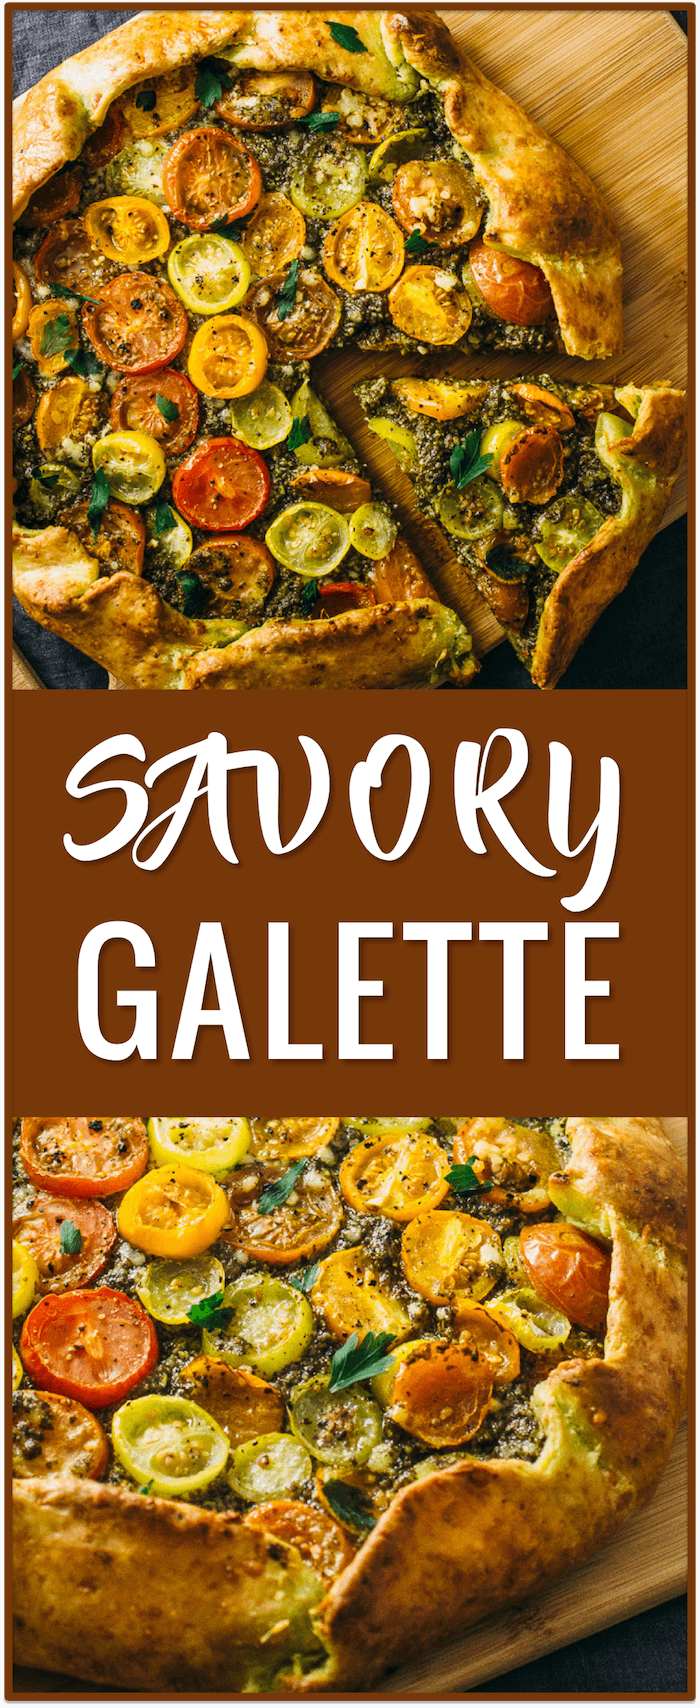 savory galette, pesto, heirloom tomatoes, parmesan crust, galette dough recipe, galette toppings, vegetarian, easy, simple, fast, recipe, dinner, lunch, dish, idea, comfort food, bread. BobsSpringBaking AD @BobsRedMill